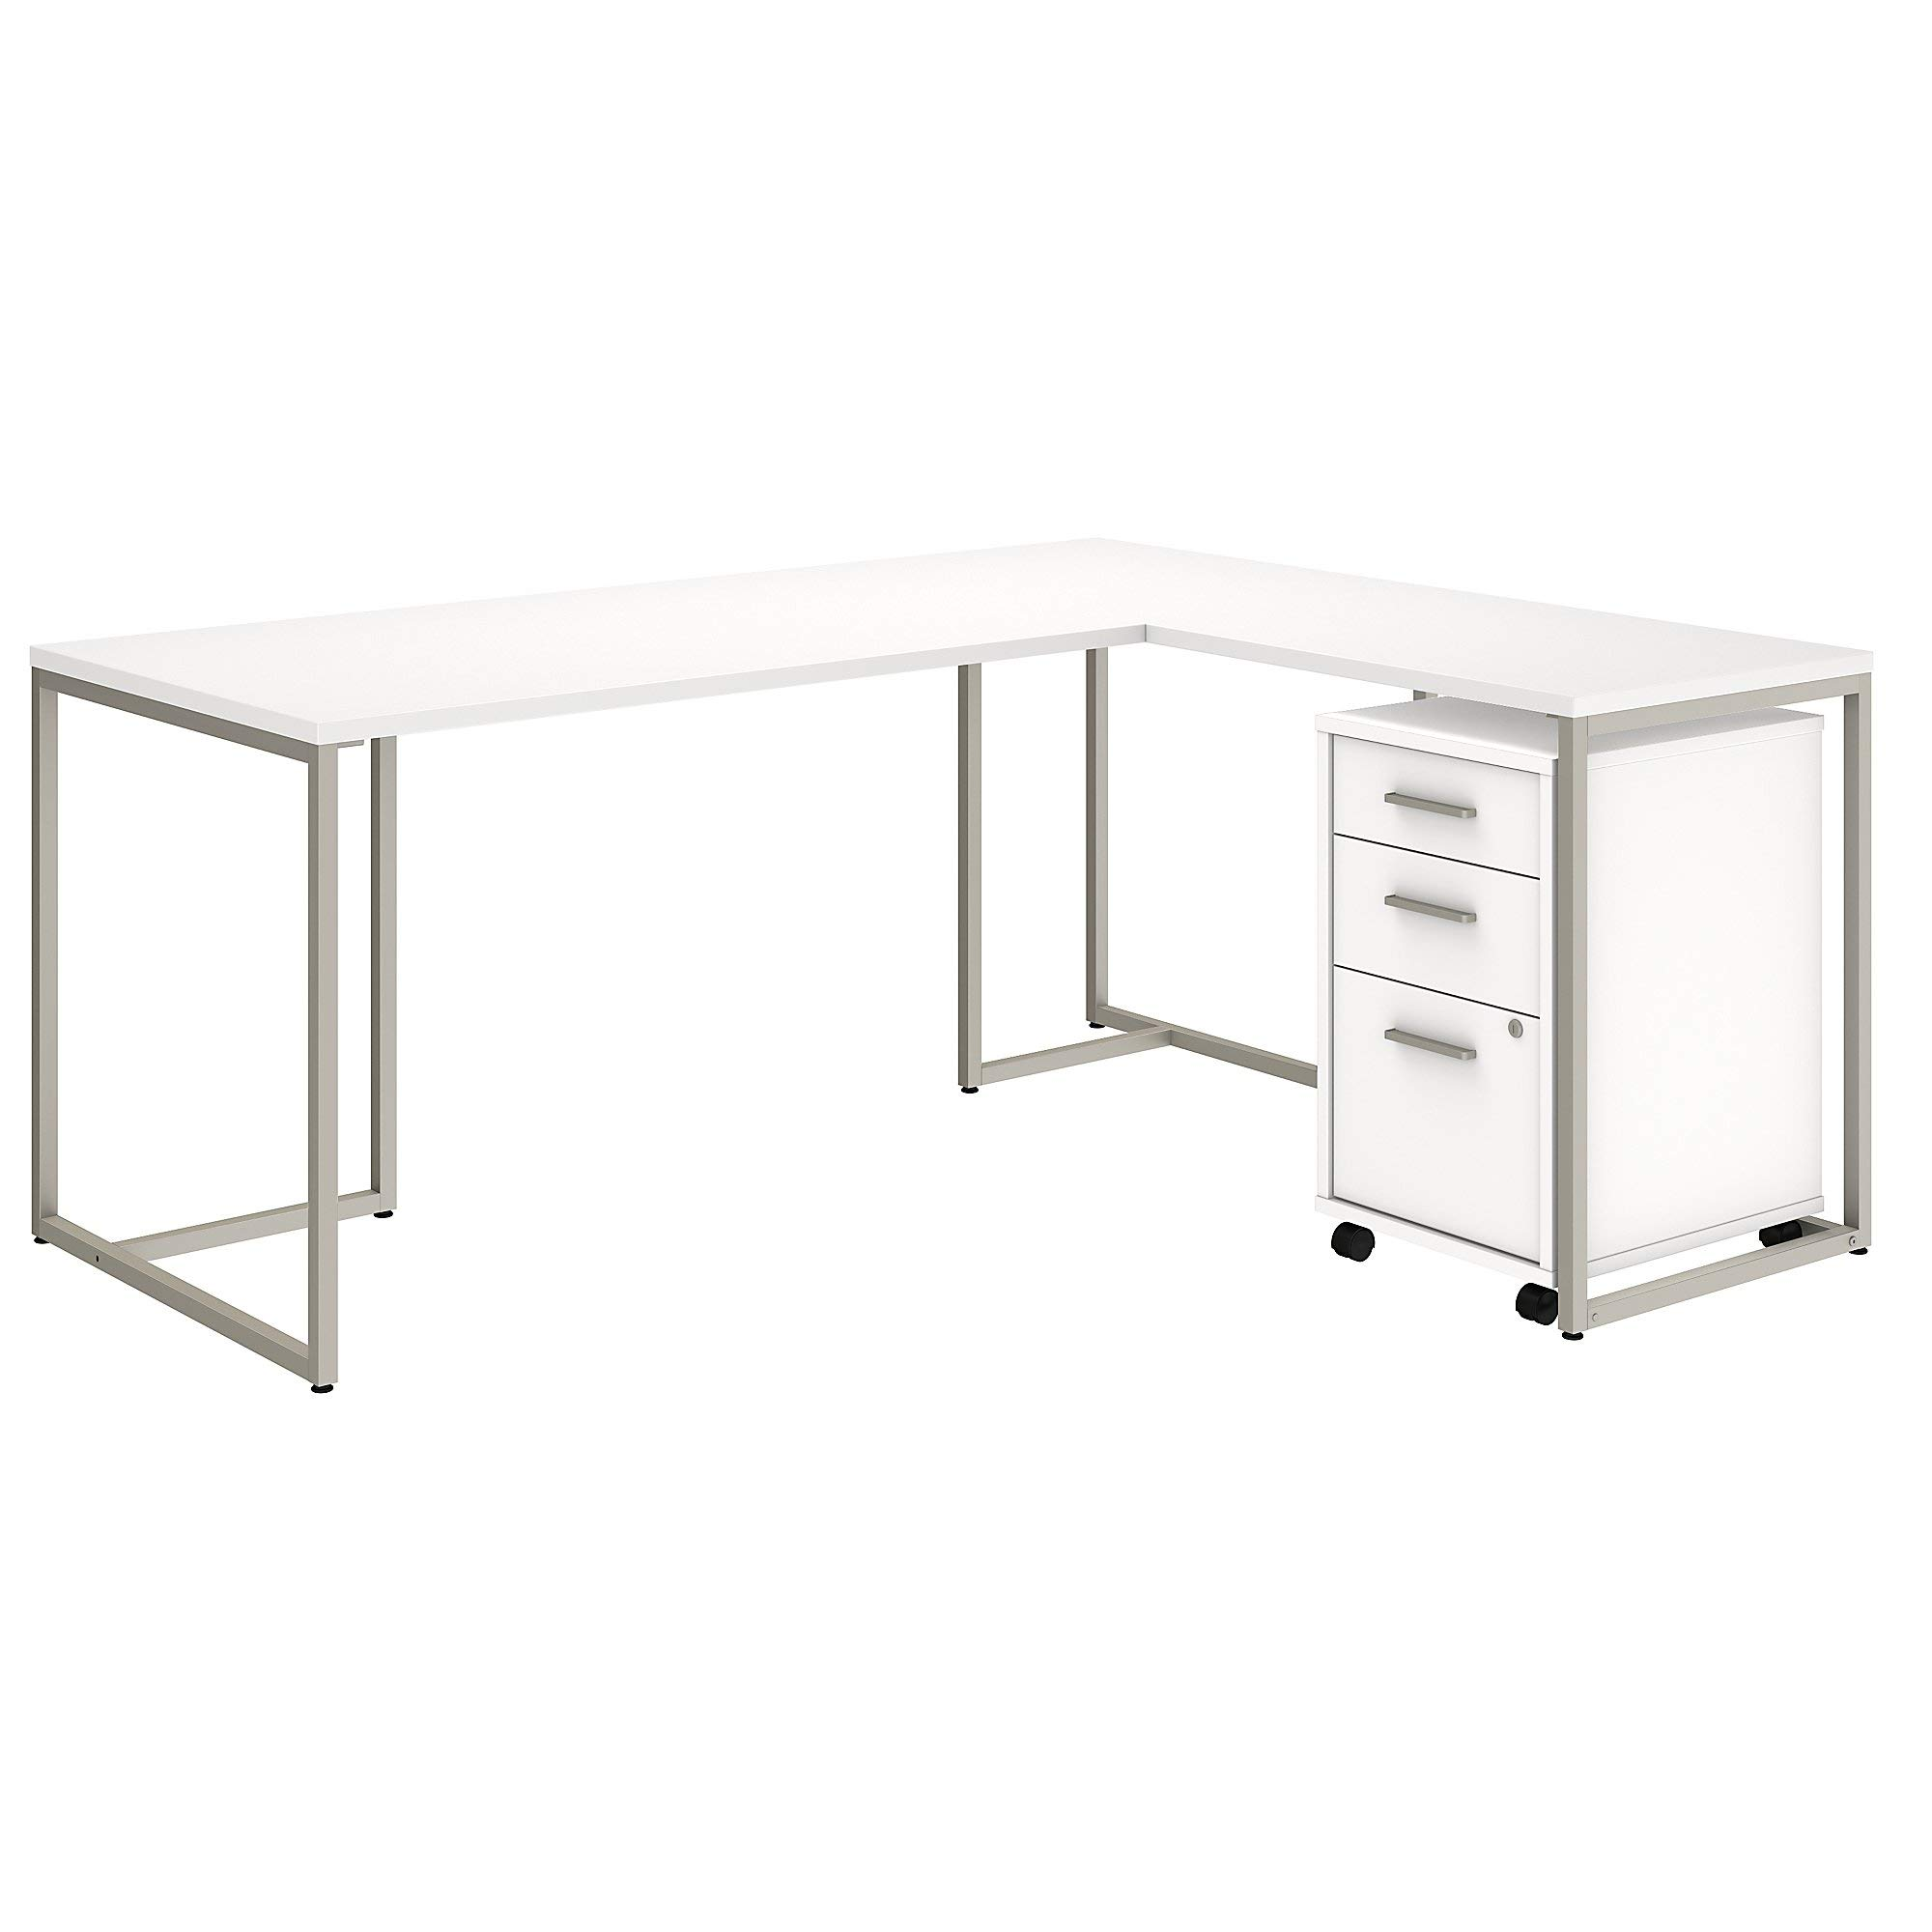 Office by kathy ireland Method 72W L Shaped Desk with 30W Return and Mobile File Cabinet in White by Kathy Ireland Office (Image #1)